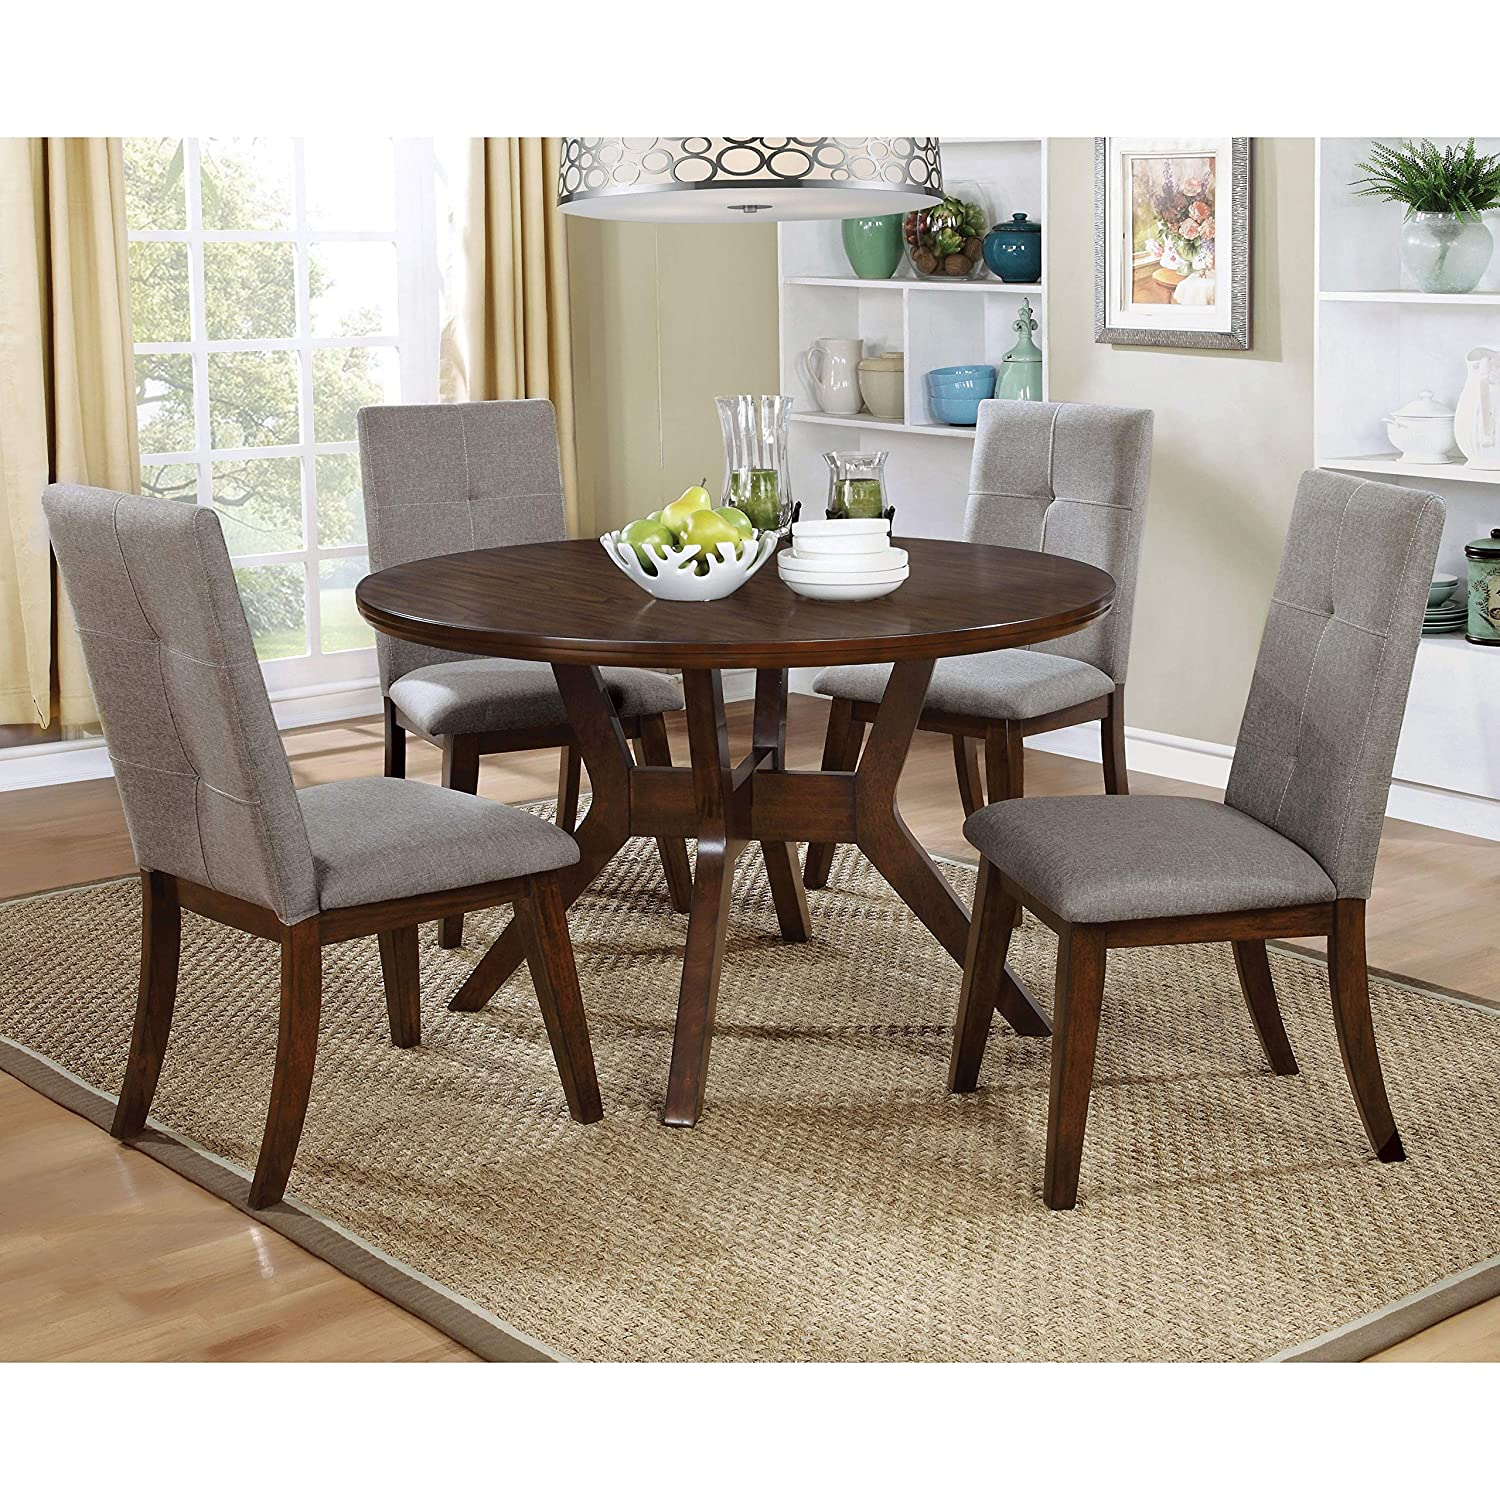 Amazon com furniture of america katrin mid century modern style 48 inch round walnut dining table tables